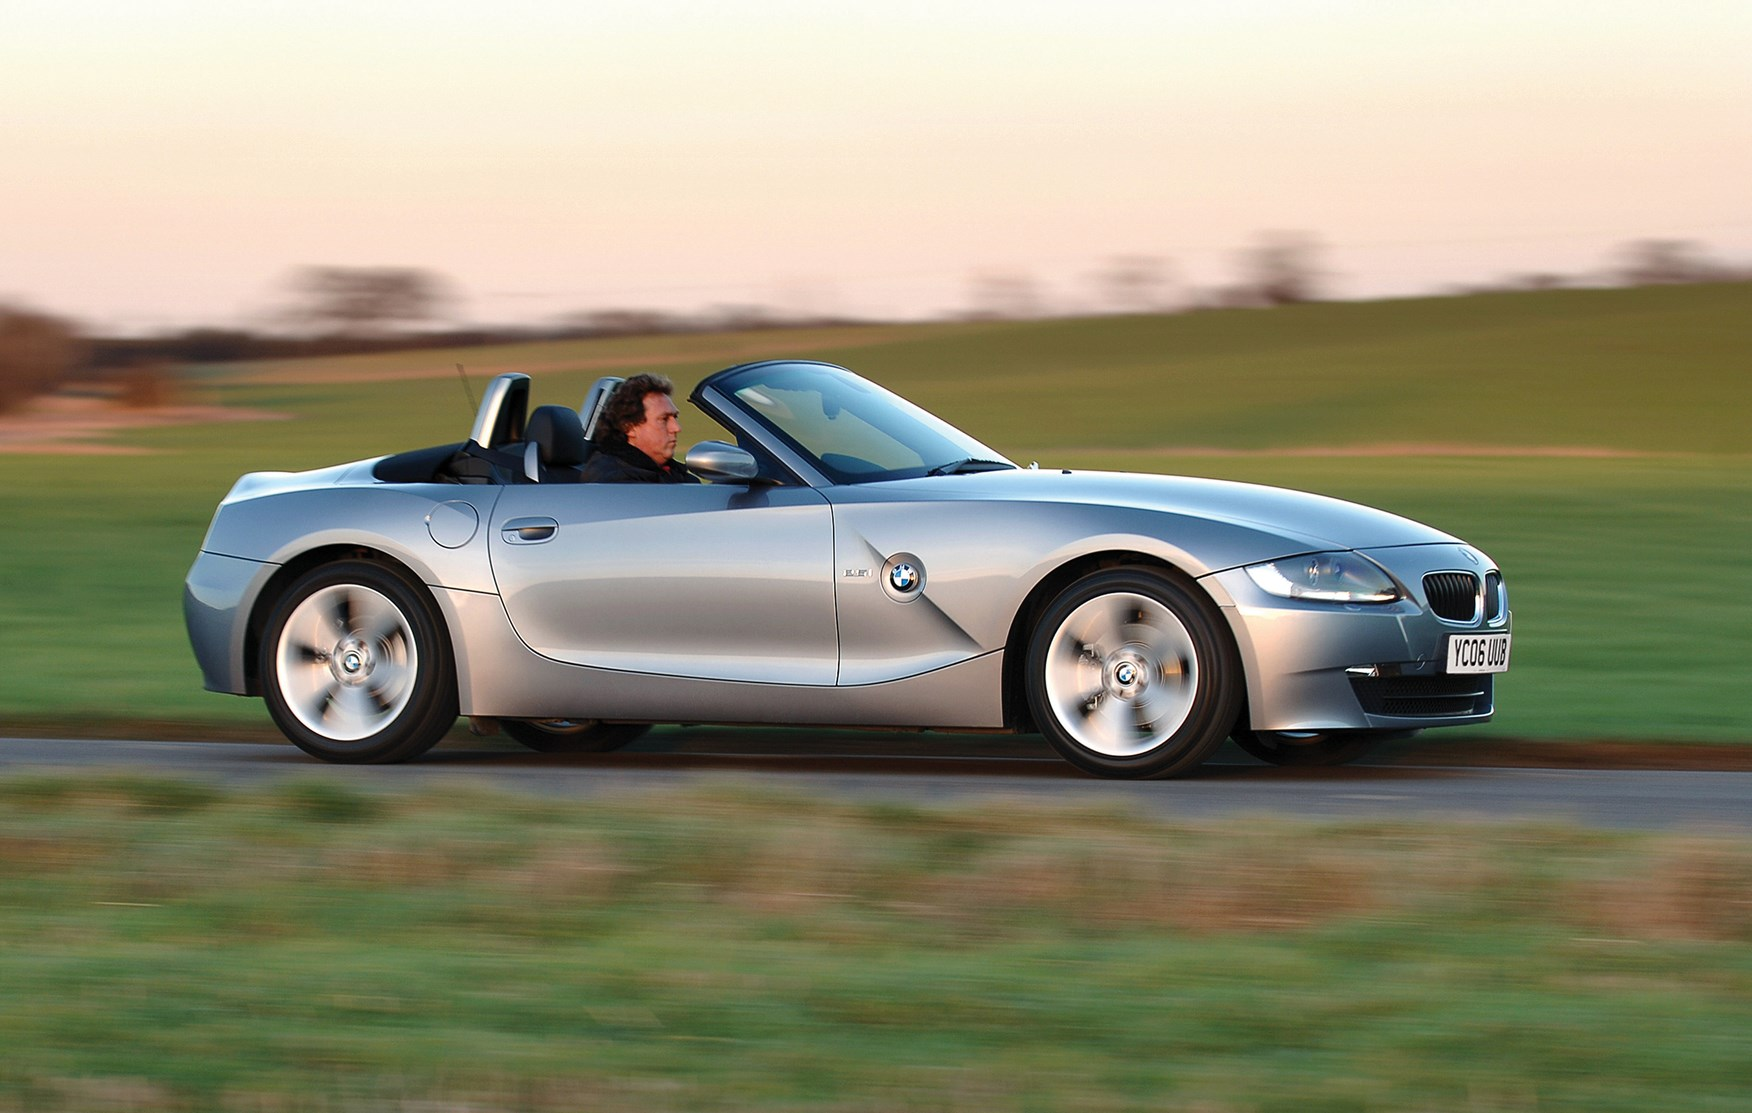 Bmw Z4 28i Review Bmw Z4 28i Review 2012 Bmw Z4 S Drive